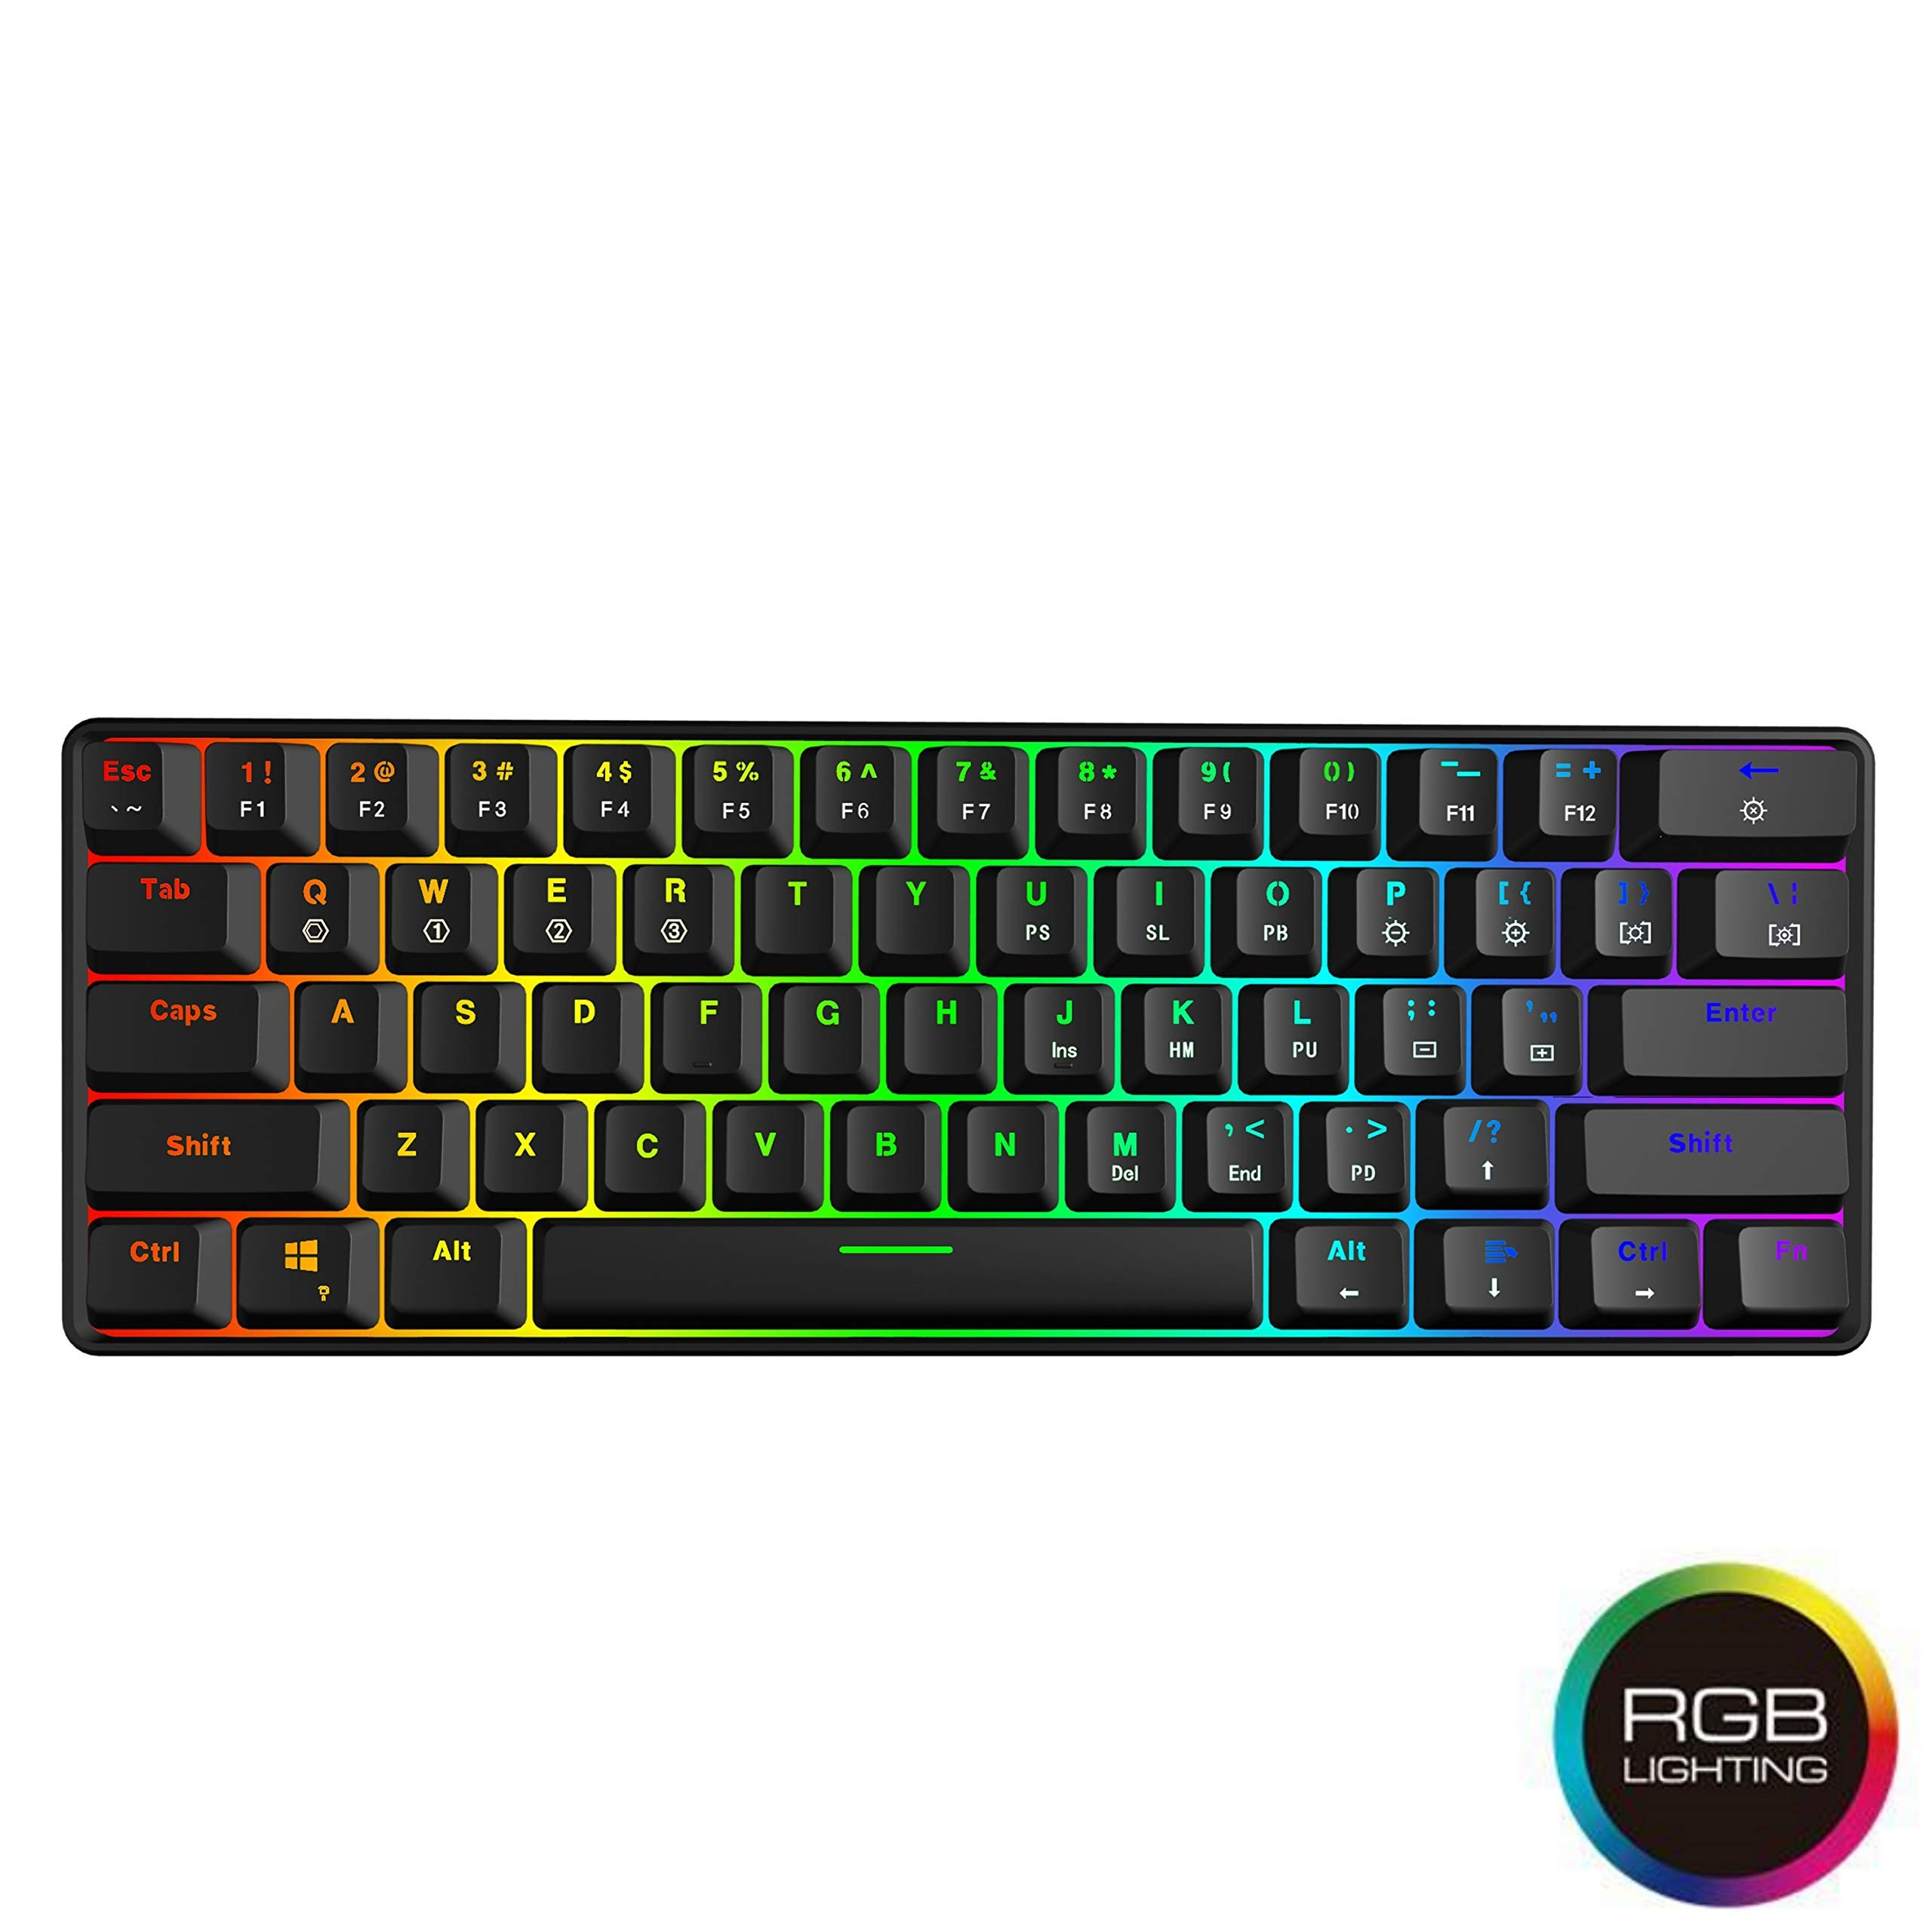 HK Gaming - GK61 Hot Swappable Mechanical Keyboard - 61 Keys Multi Color RGB Illuminated LED Backlit Wired Gaming Keyboard, Waterproof Programmable, for PC/Mac Gamer, Typist (Gateron Optical Brown) by HK Gaming